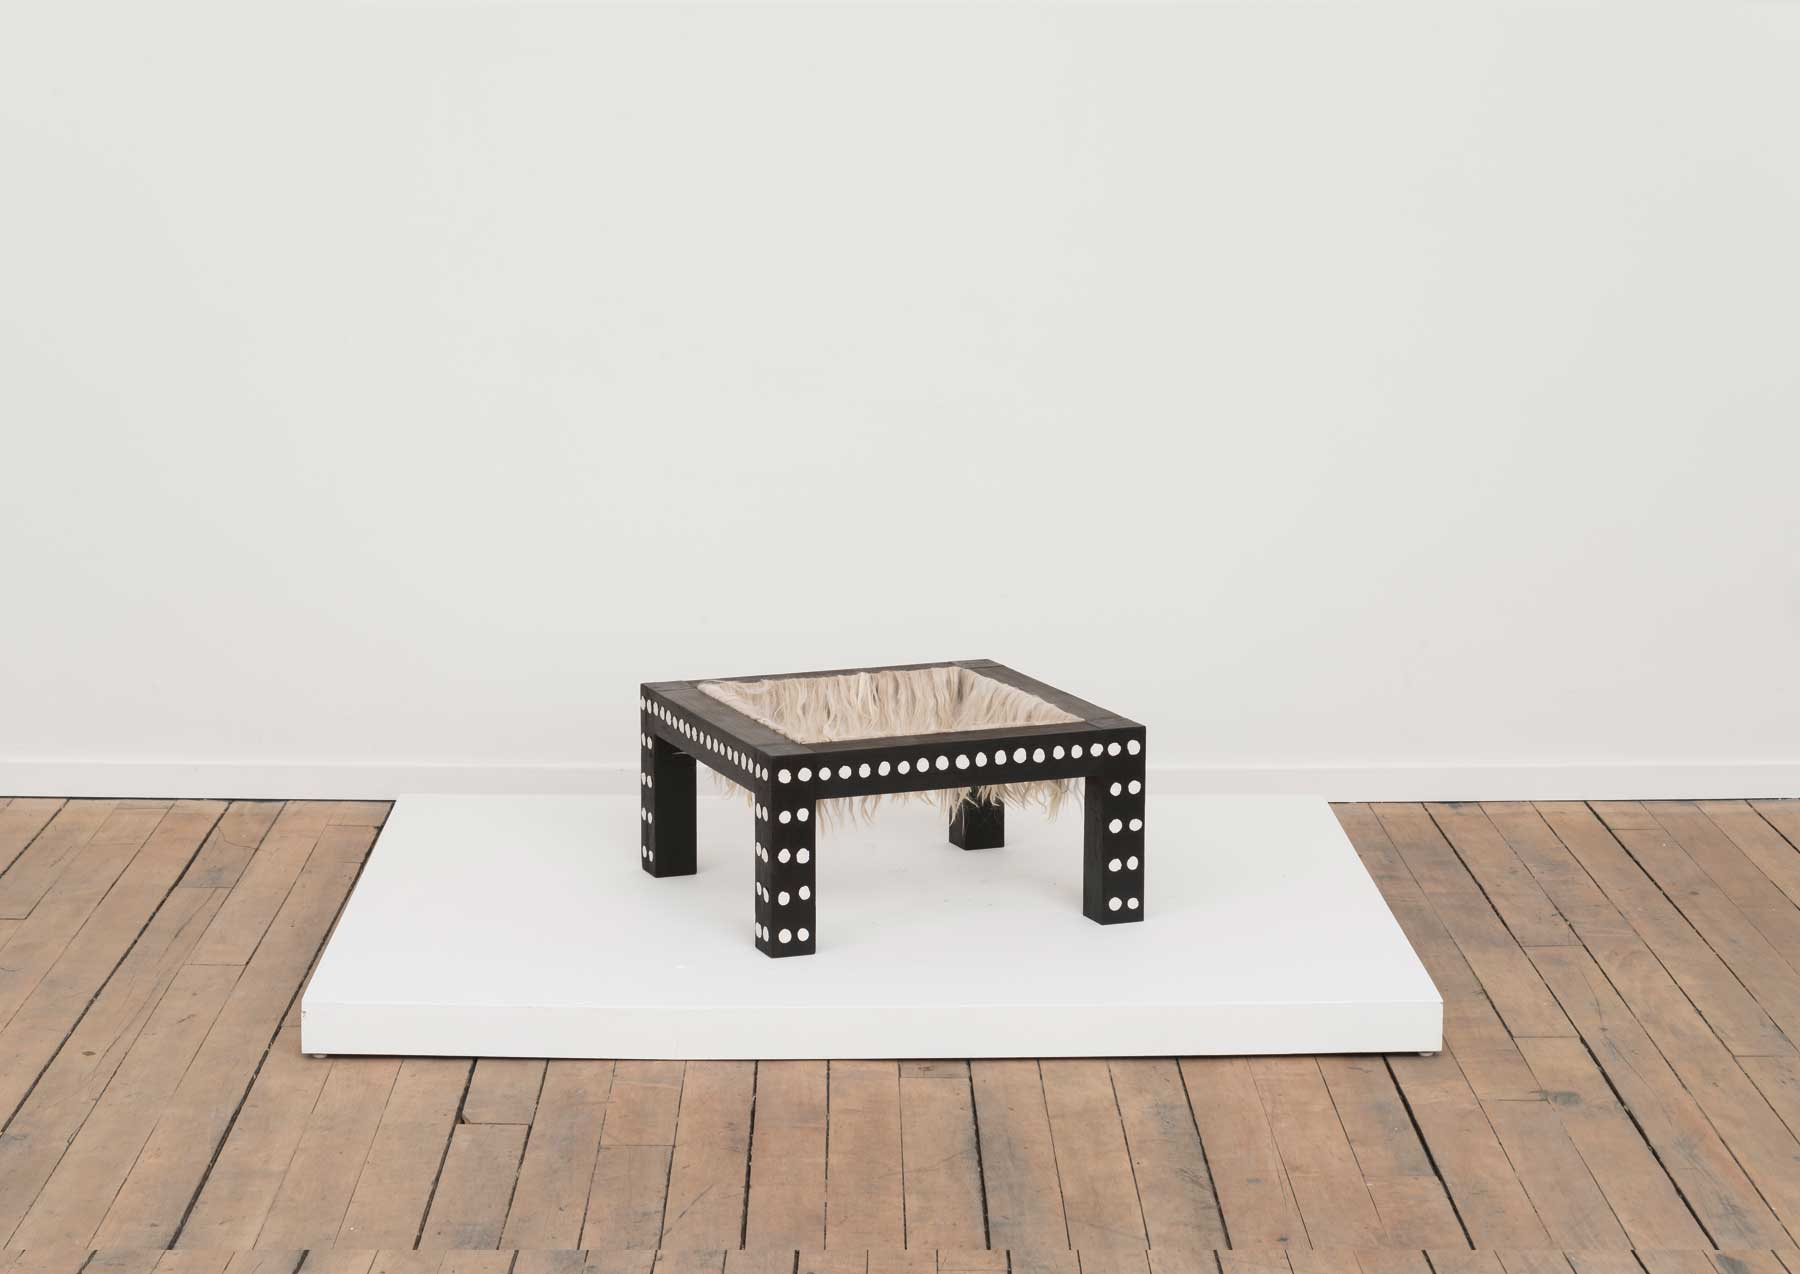 Soothe Table (Pacify) , 2015  Charred poplar, self-drying clay, alpaca  20 x 20 x 10 inches  Image courtesy of Volume Gallery, Chicago, IL